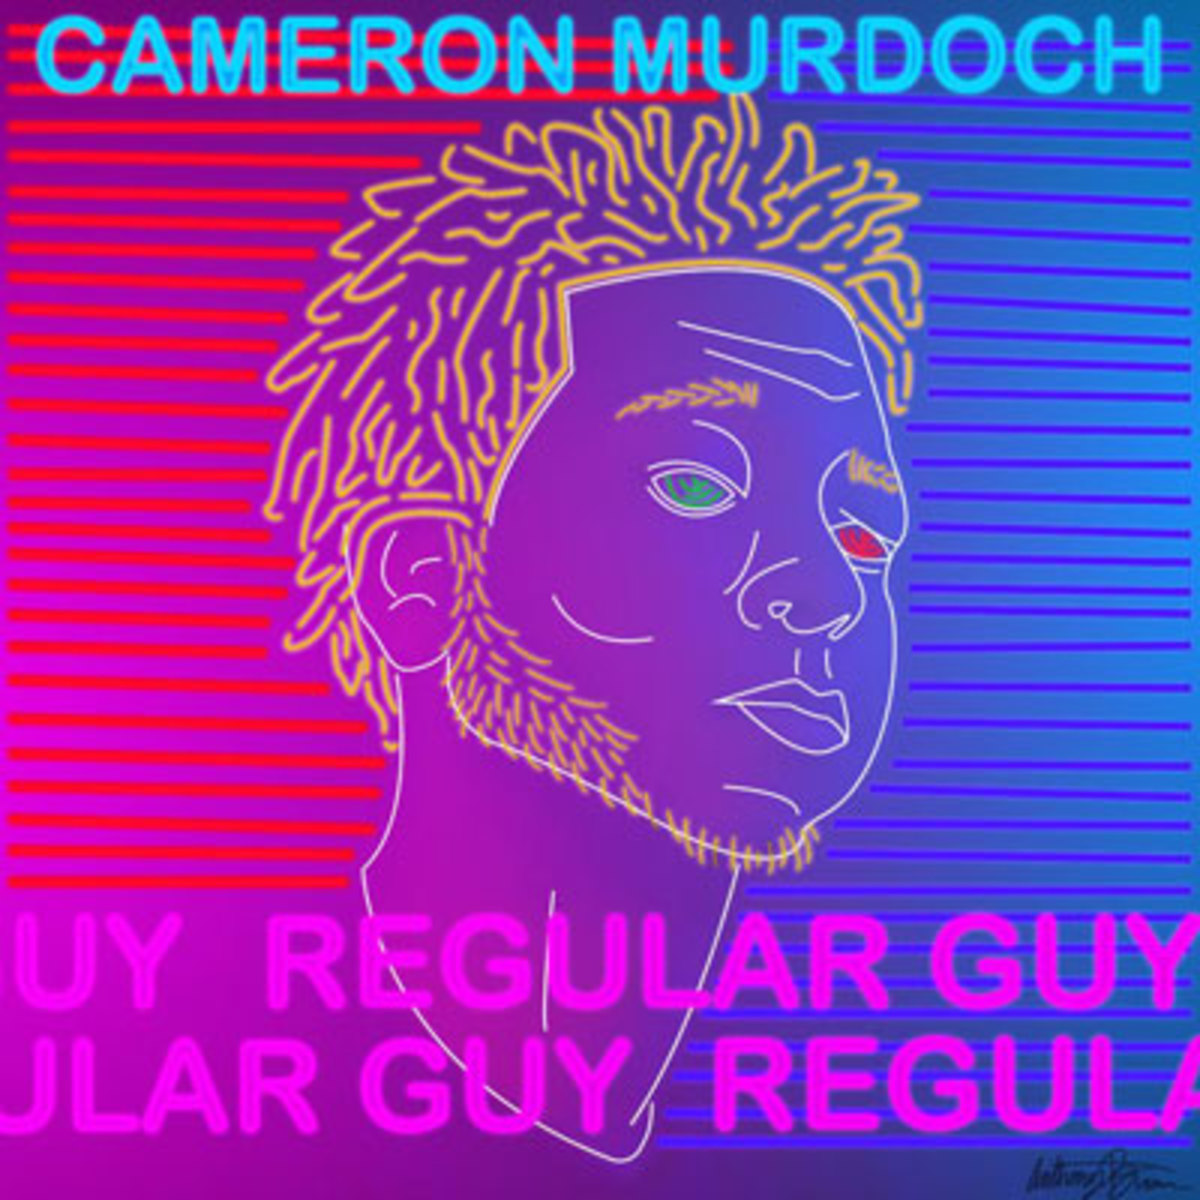 cameron-murdoch-regular-guy-video.jpg